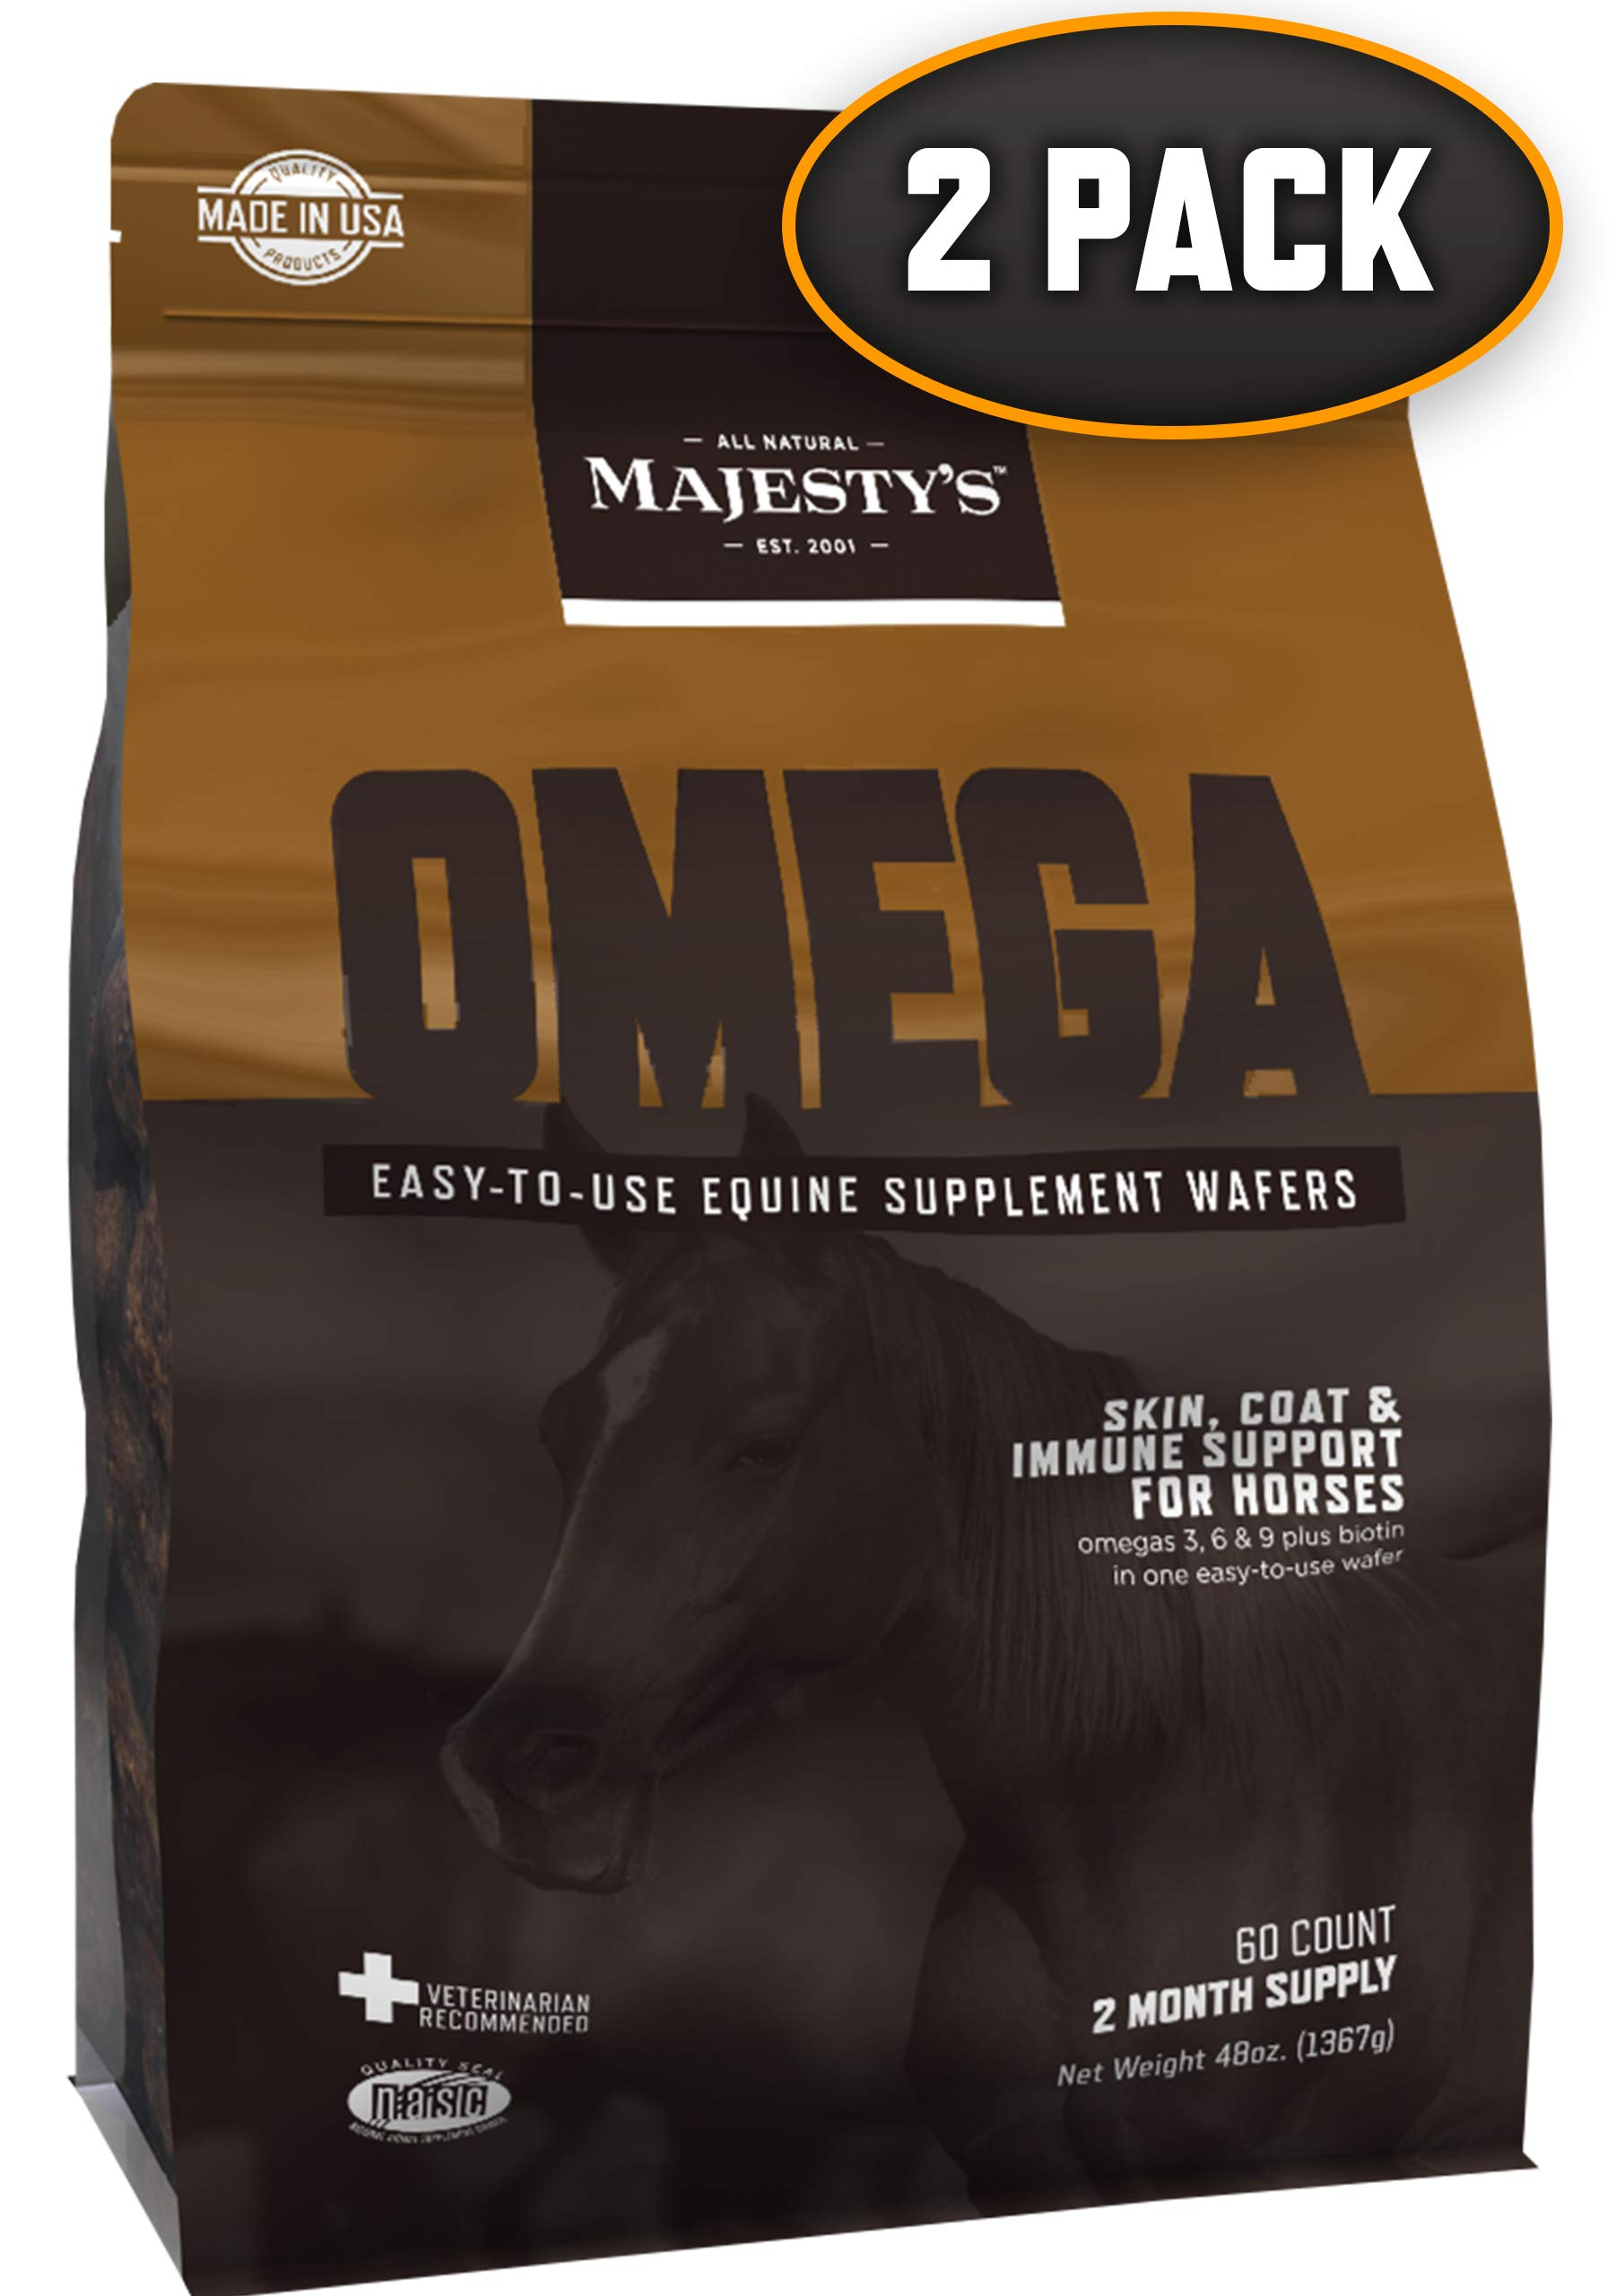 Majesty's Omega Wafers - Horse/Equine Skin, Coat, Immune Support Supplement - Omega 3, 6, 9, Biotin - Reduces Inflammation & Skin Allergy, Improves Immune System - 4 Month Supply (2 Bags/120 Count) by Majesty's